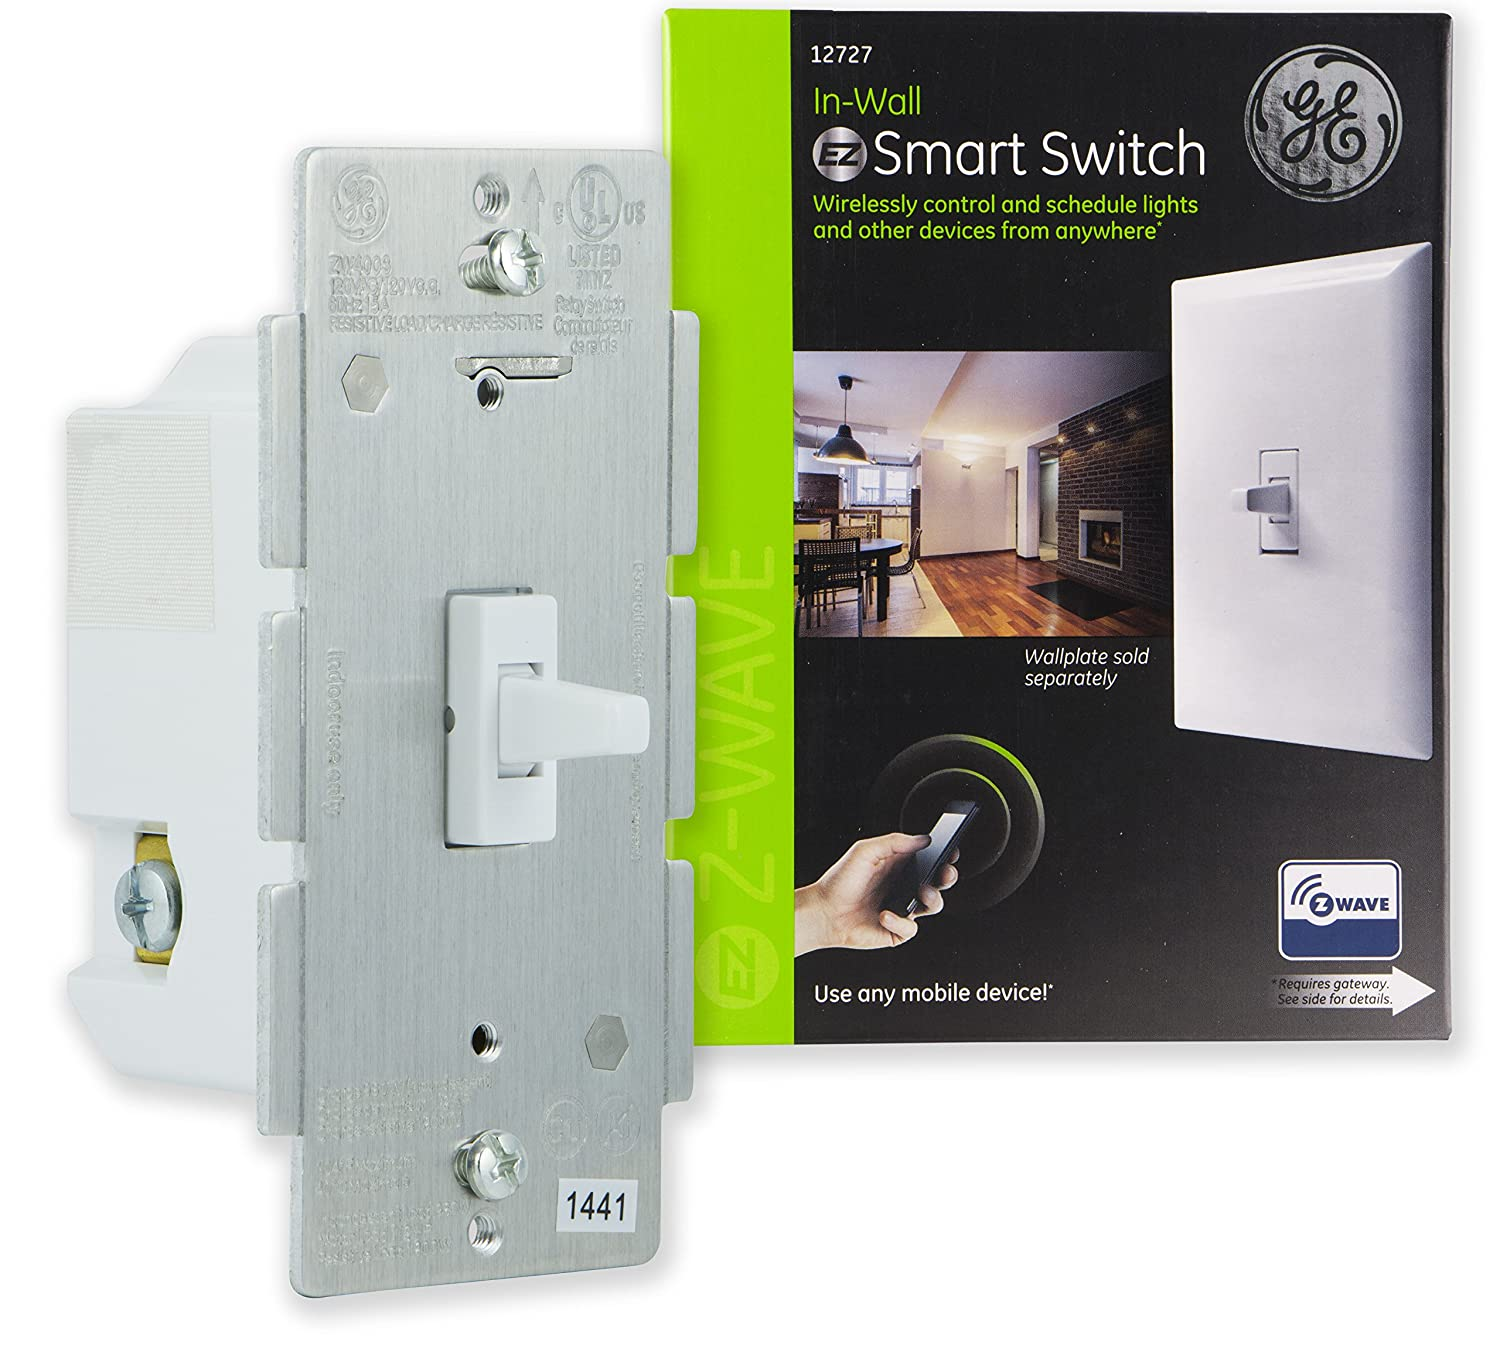 Ge Z Wave Wireless Smart Lighting Control Light Switch Toggle Style Wiring Up A 3 Way On Off In Wall White Repeater Range Extender Zwave Hub Required Works With